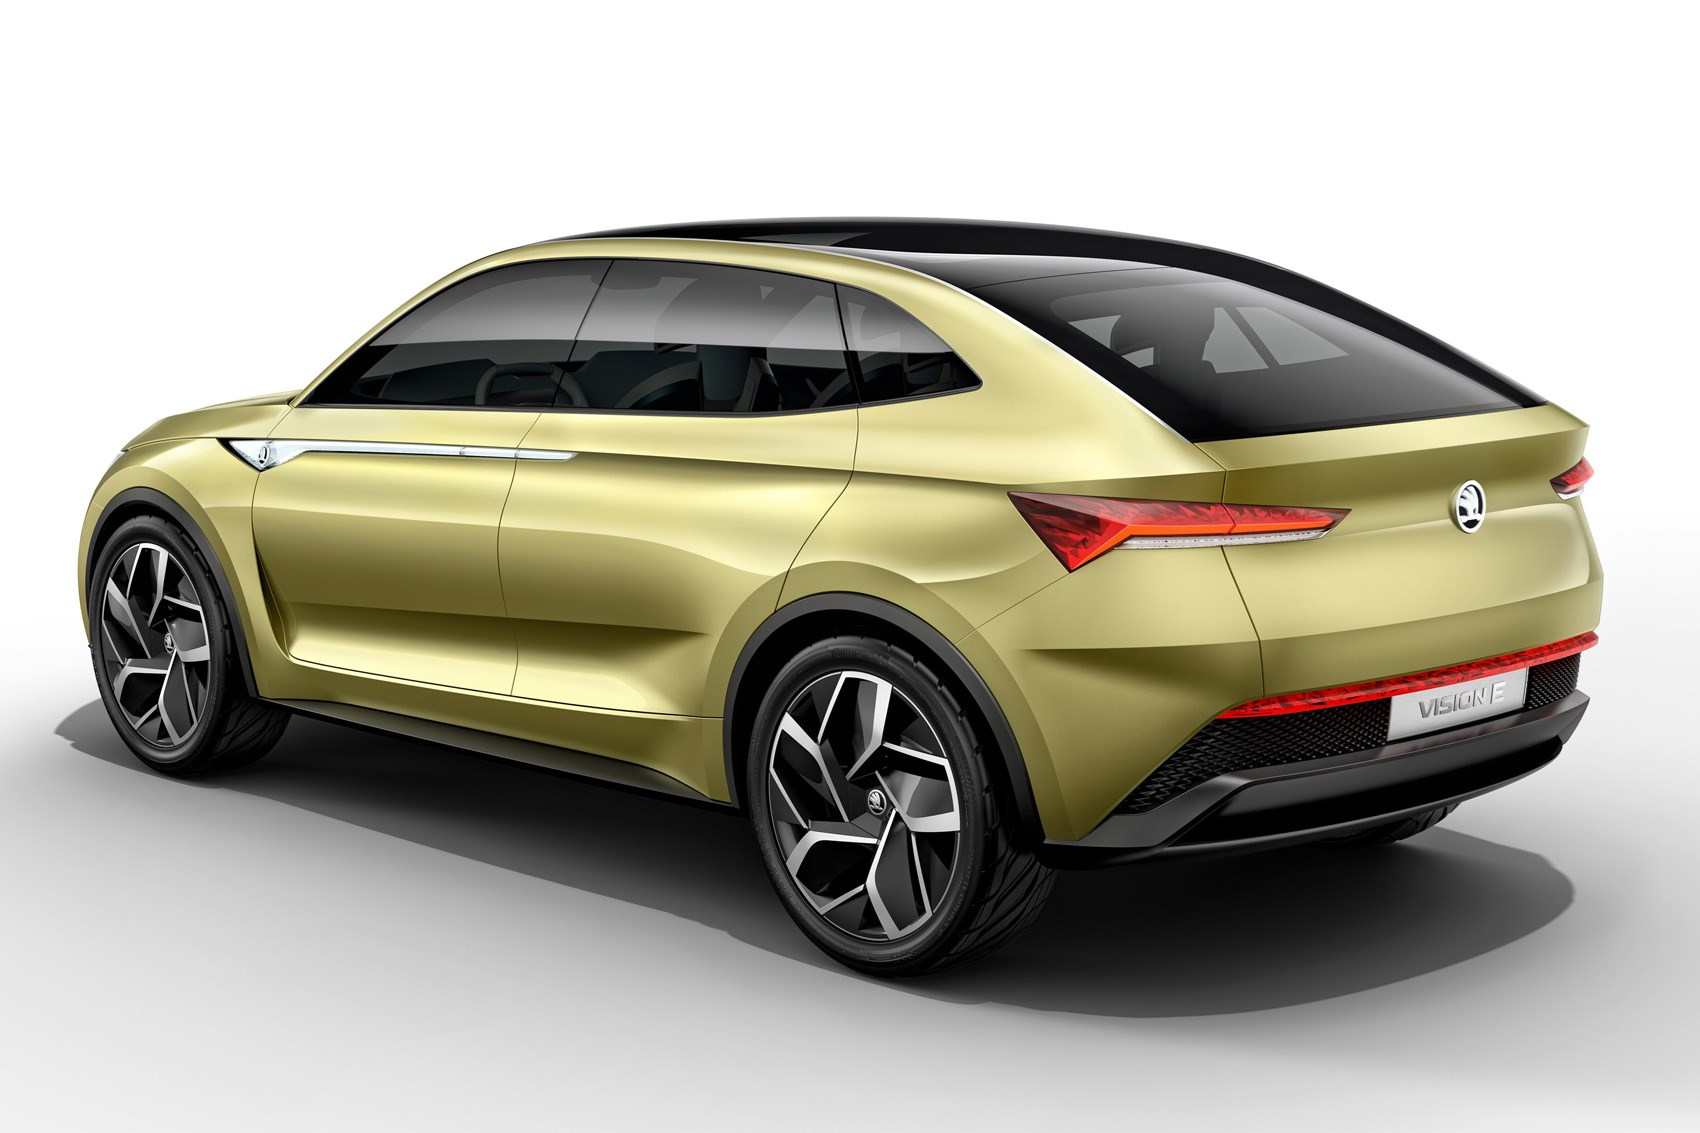 Skoda Vision E its the Czechs first electric car by CAR Magazine